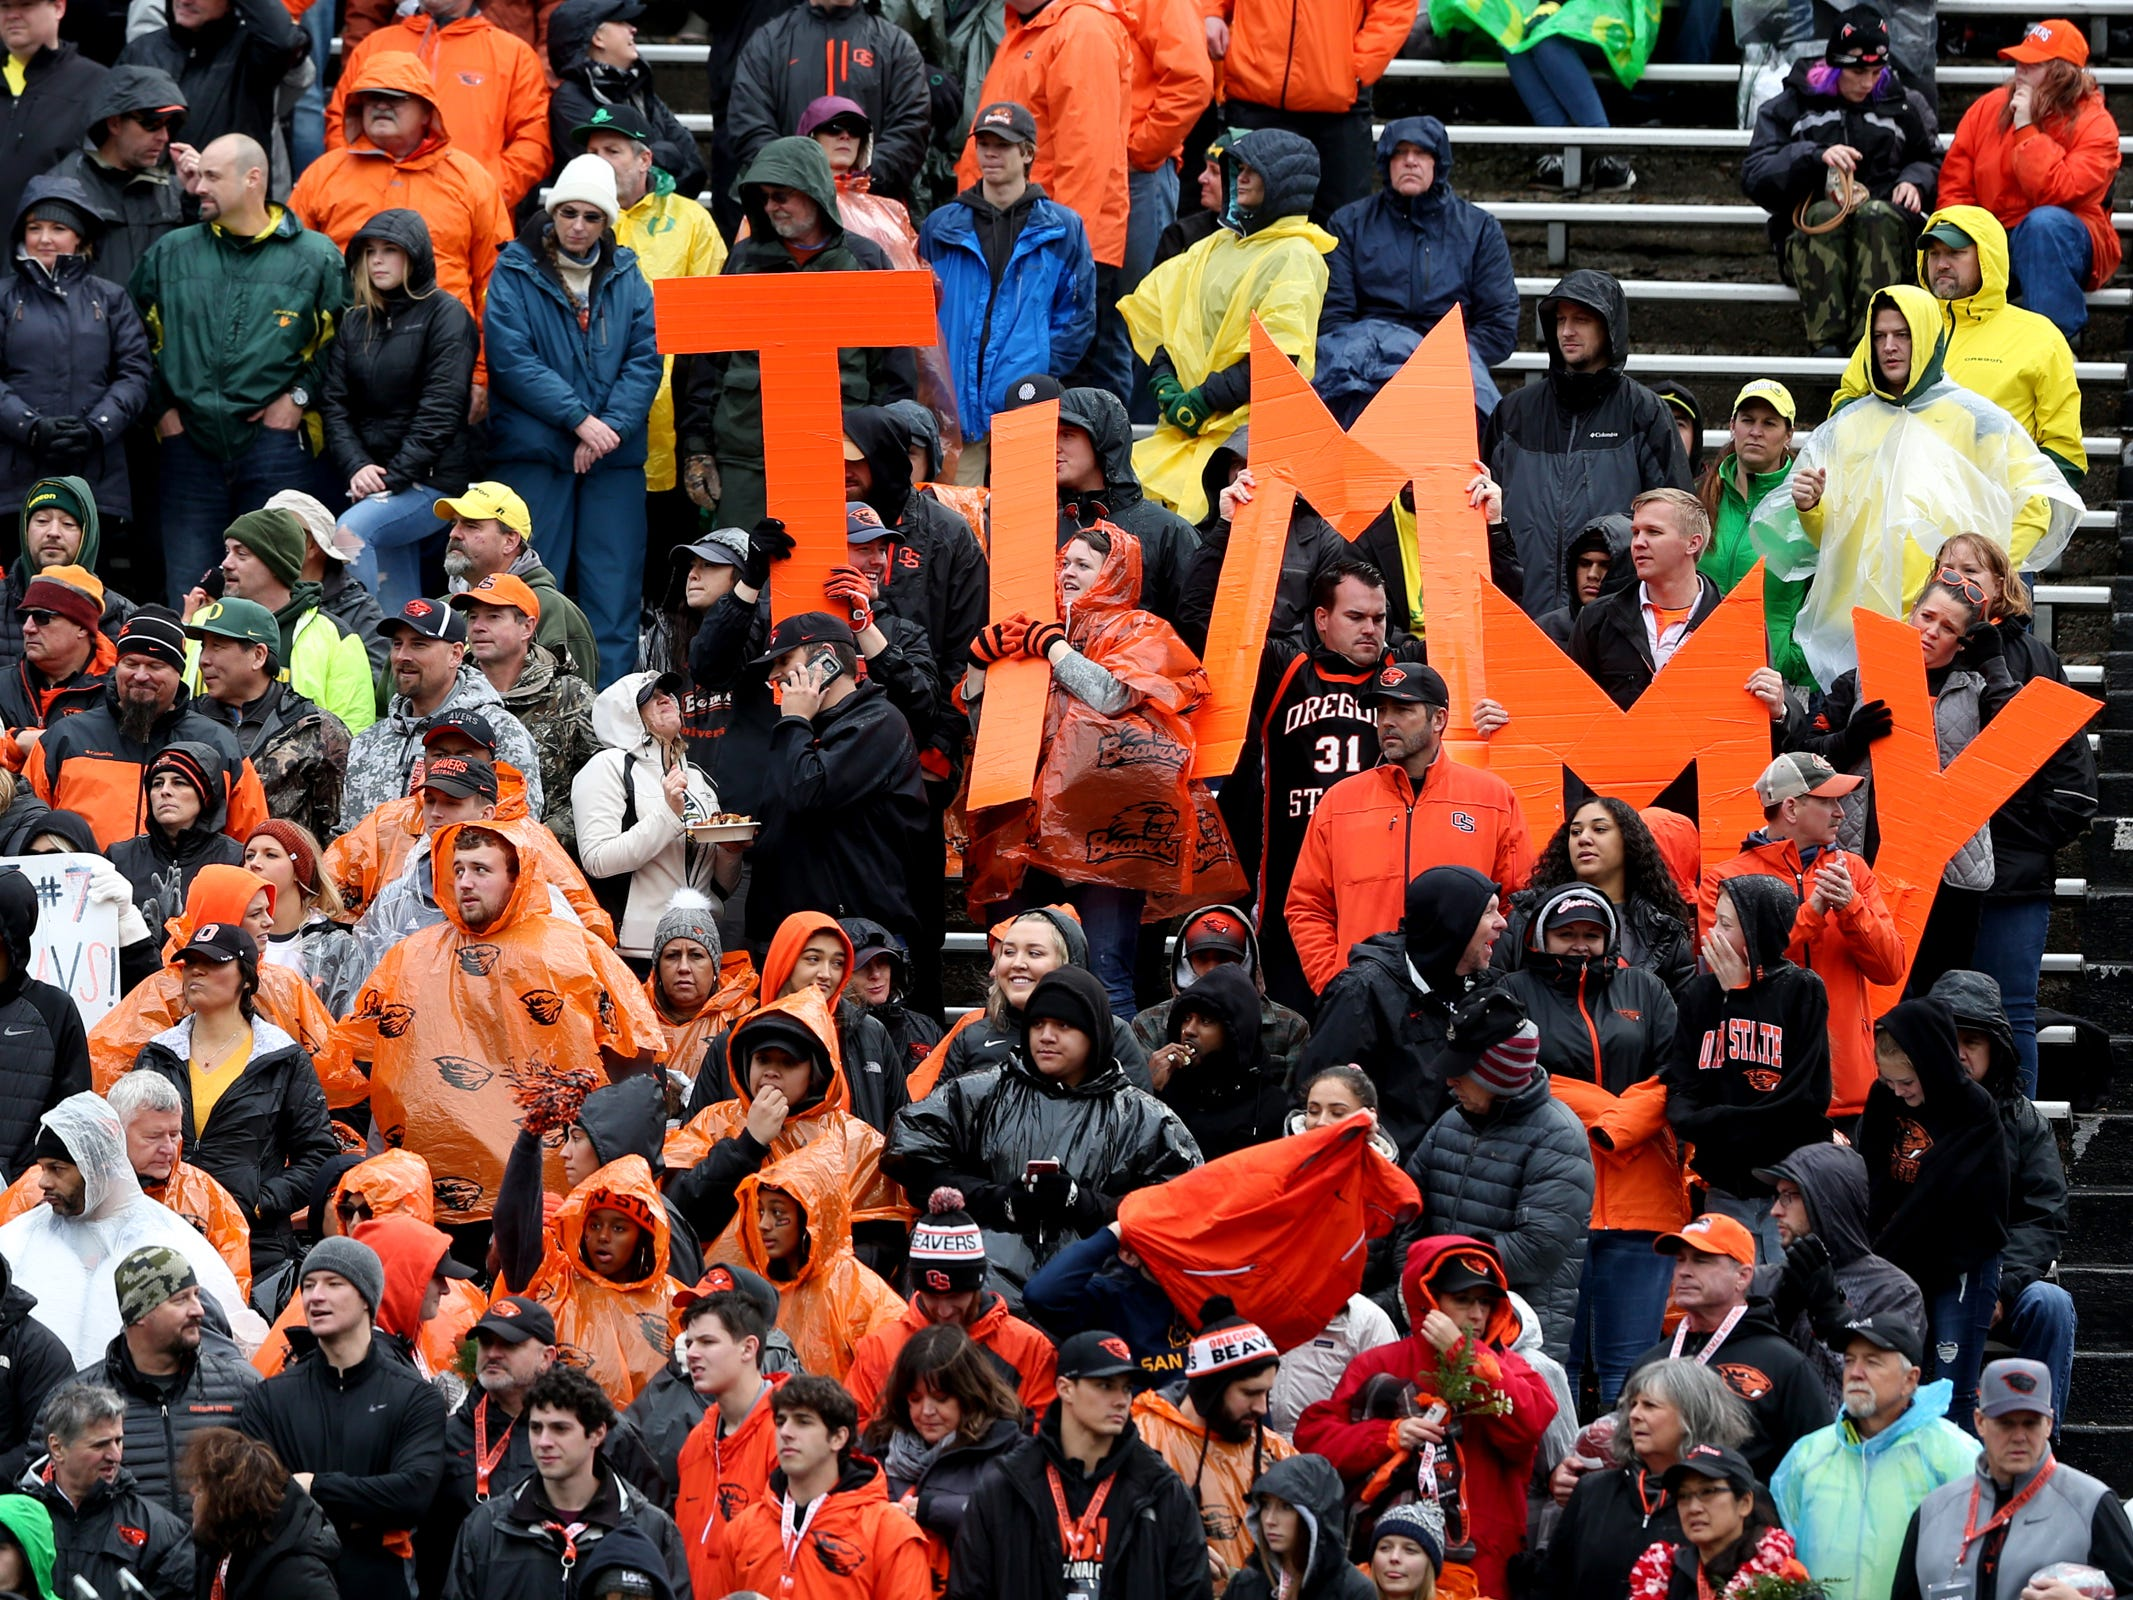 Fans cheer on Oregon State's Timmy Hernandez (18) in the Oregon vs. Oregon State Civil war football game at Oregon State University in Corvallis on Friday, Nov. 23, 2018.